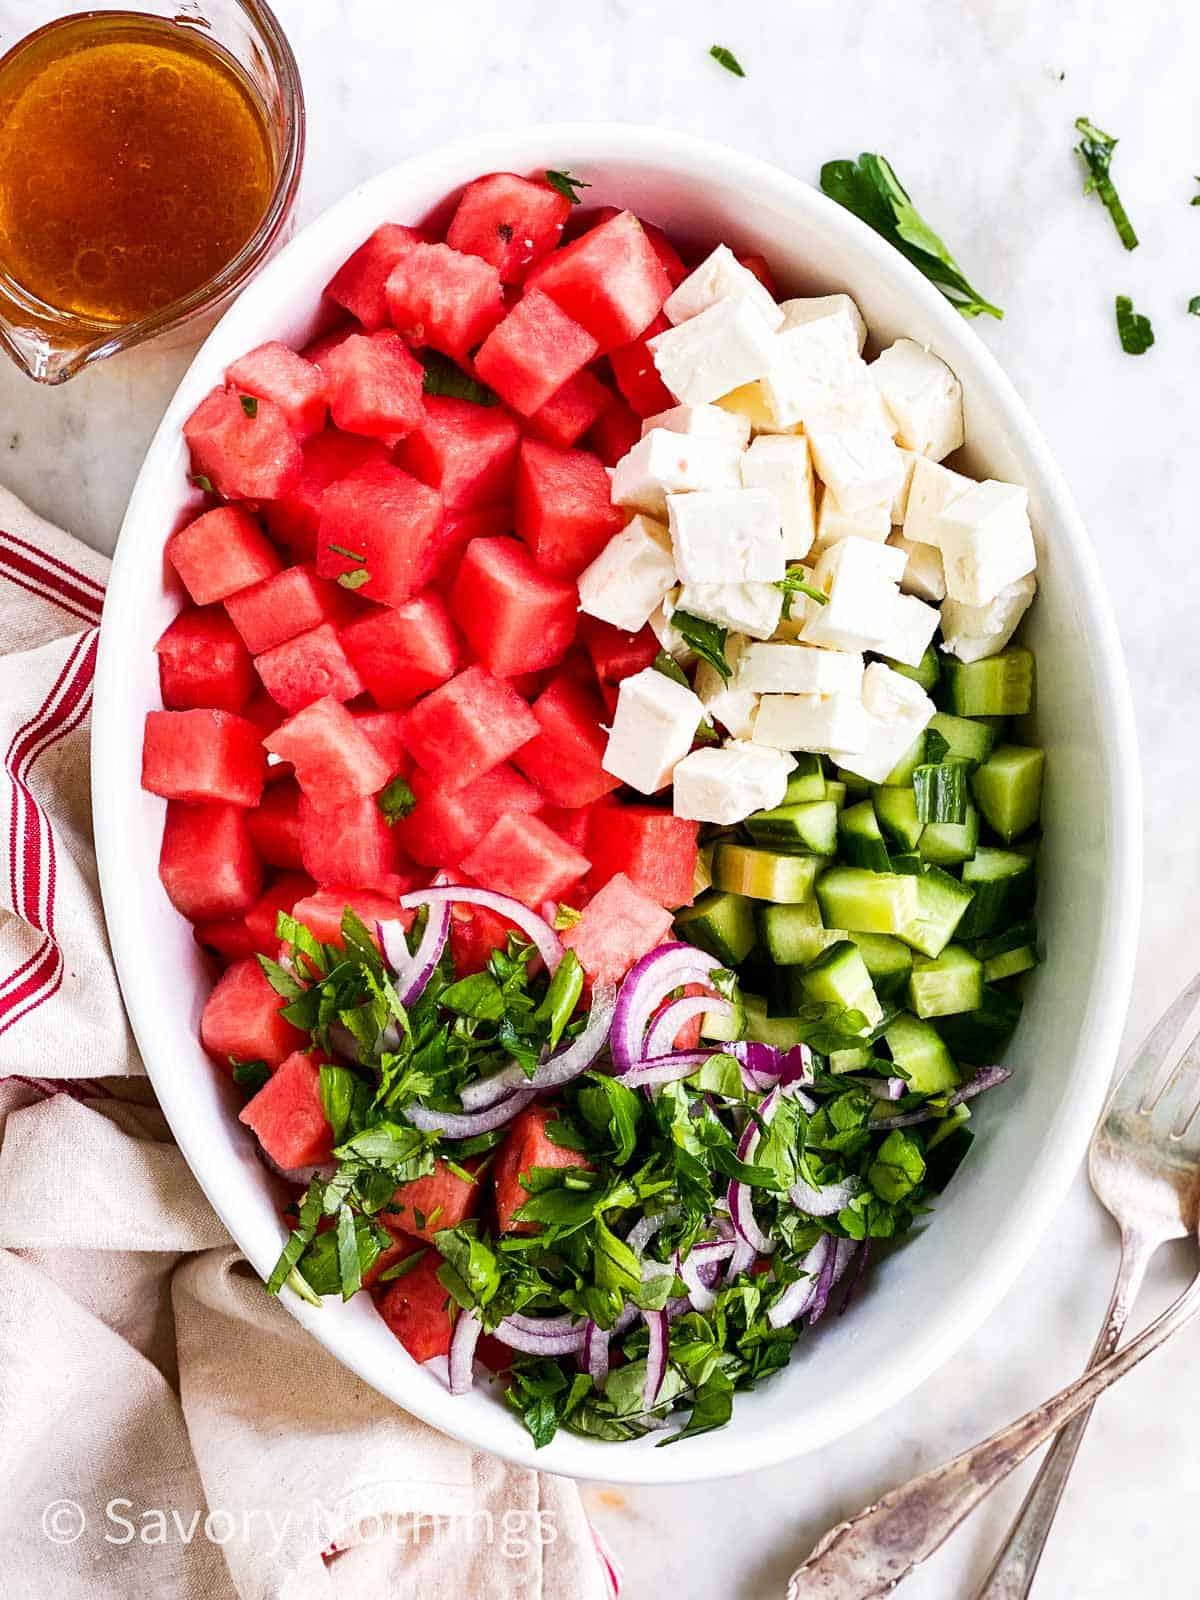 ingredients for watermelon salad in white oval dish